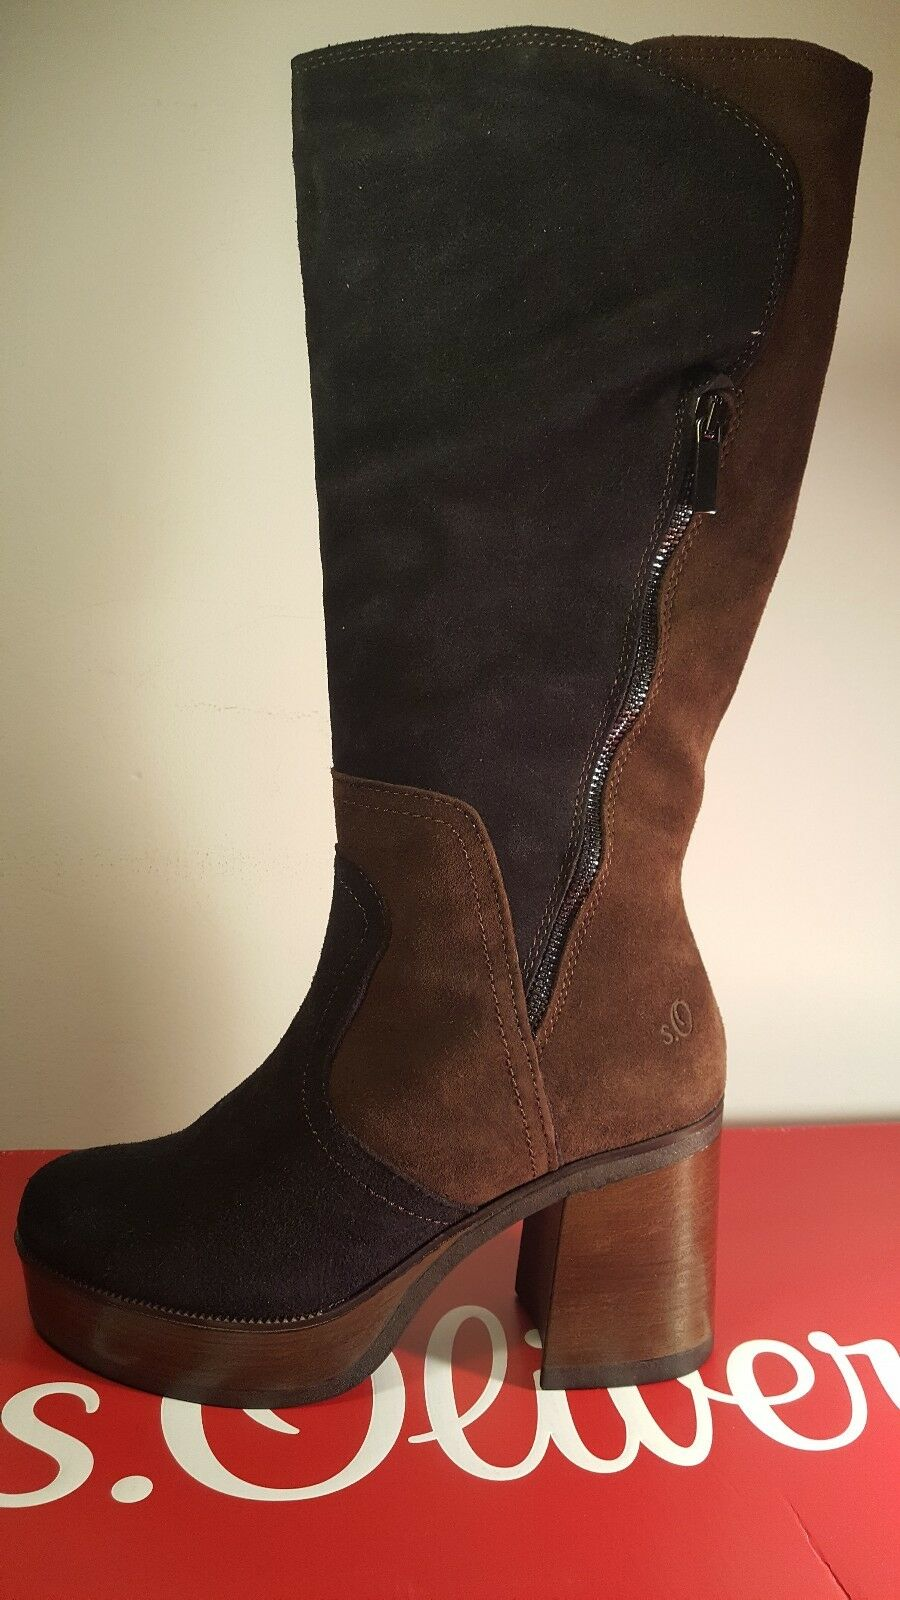 S Oliver brown suede calf length boots 5